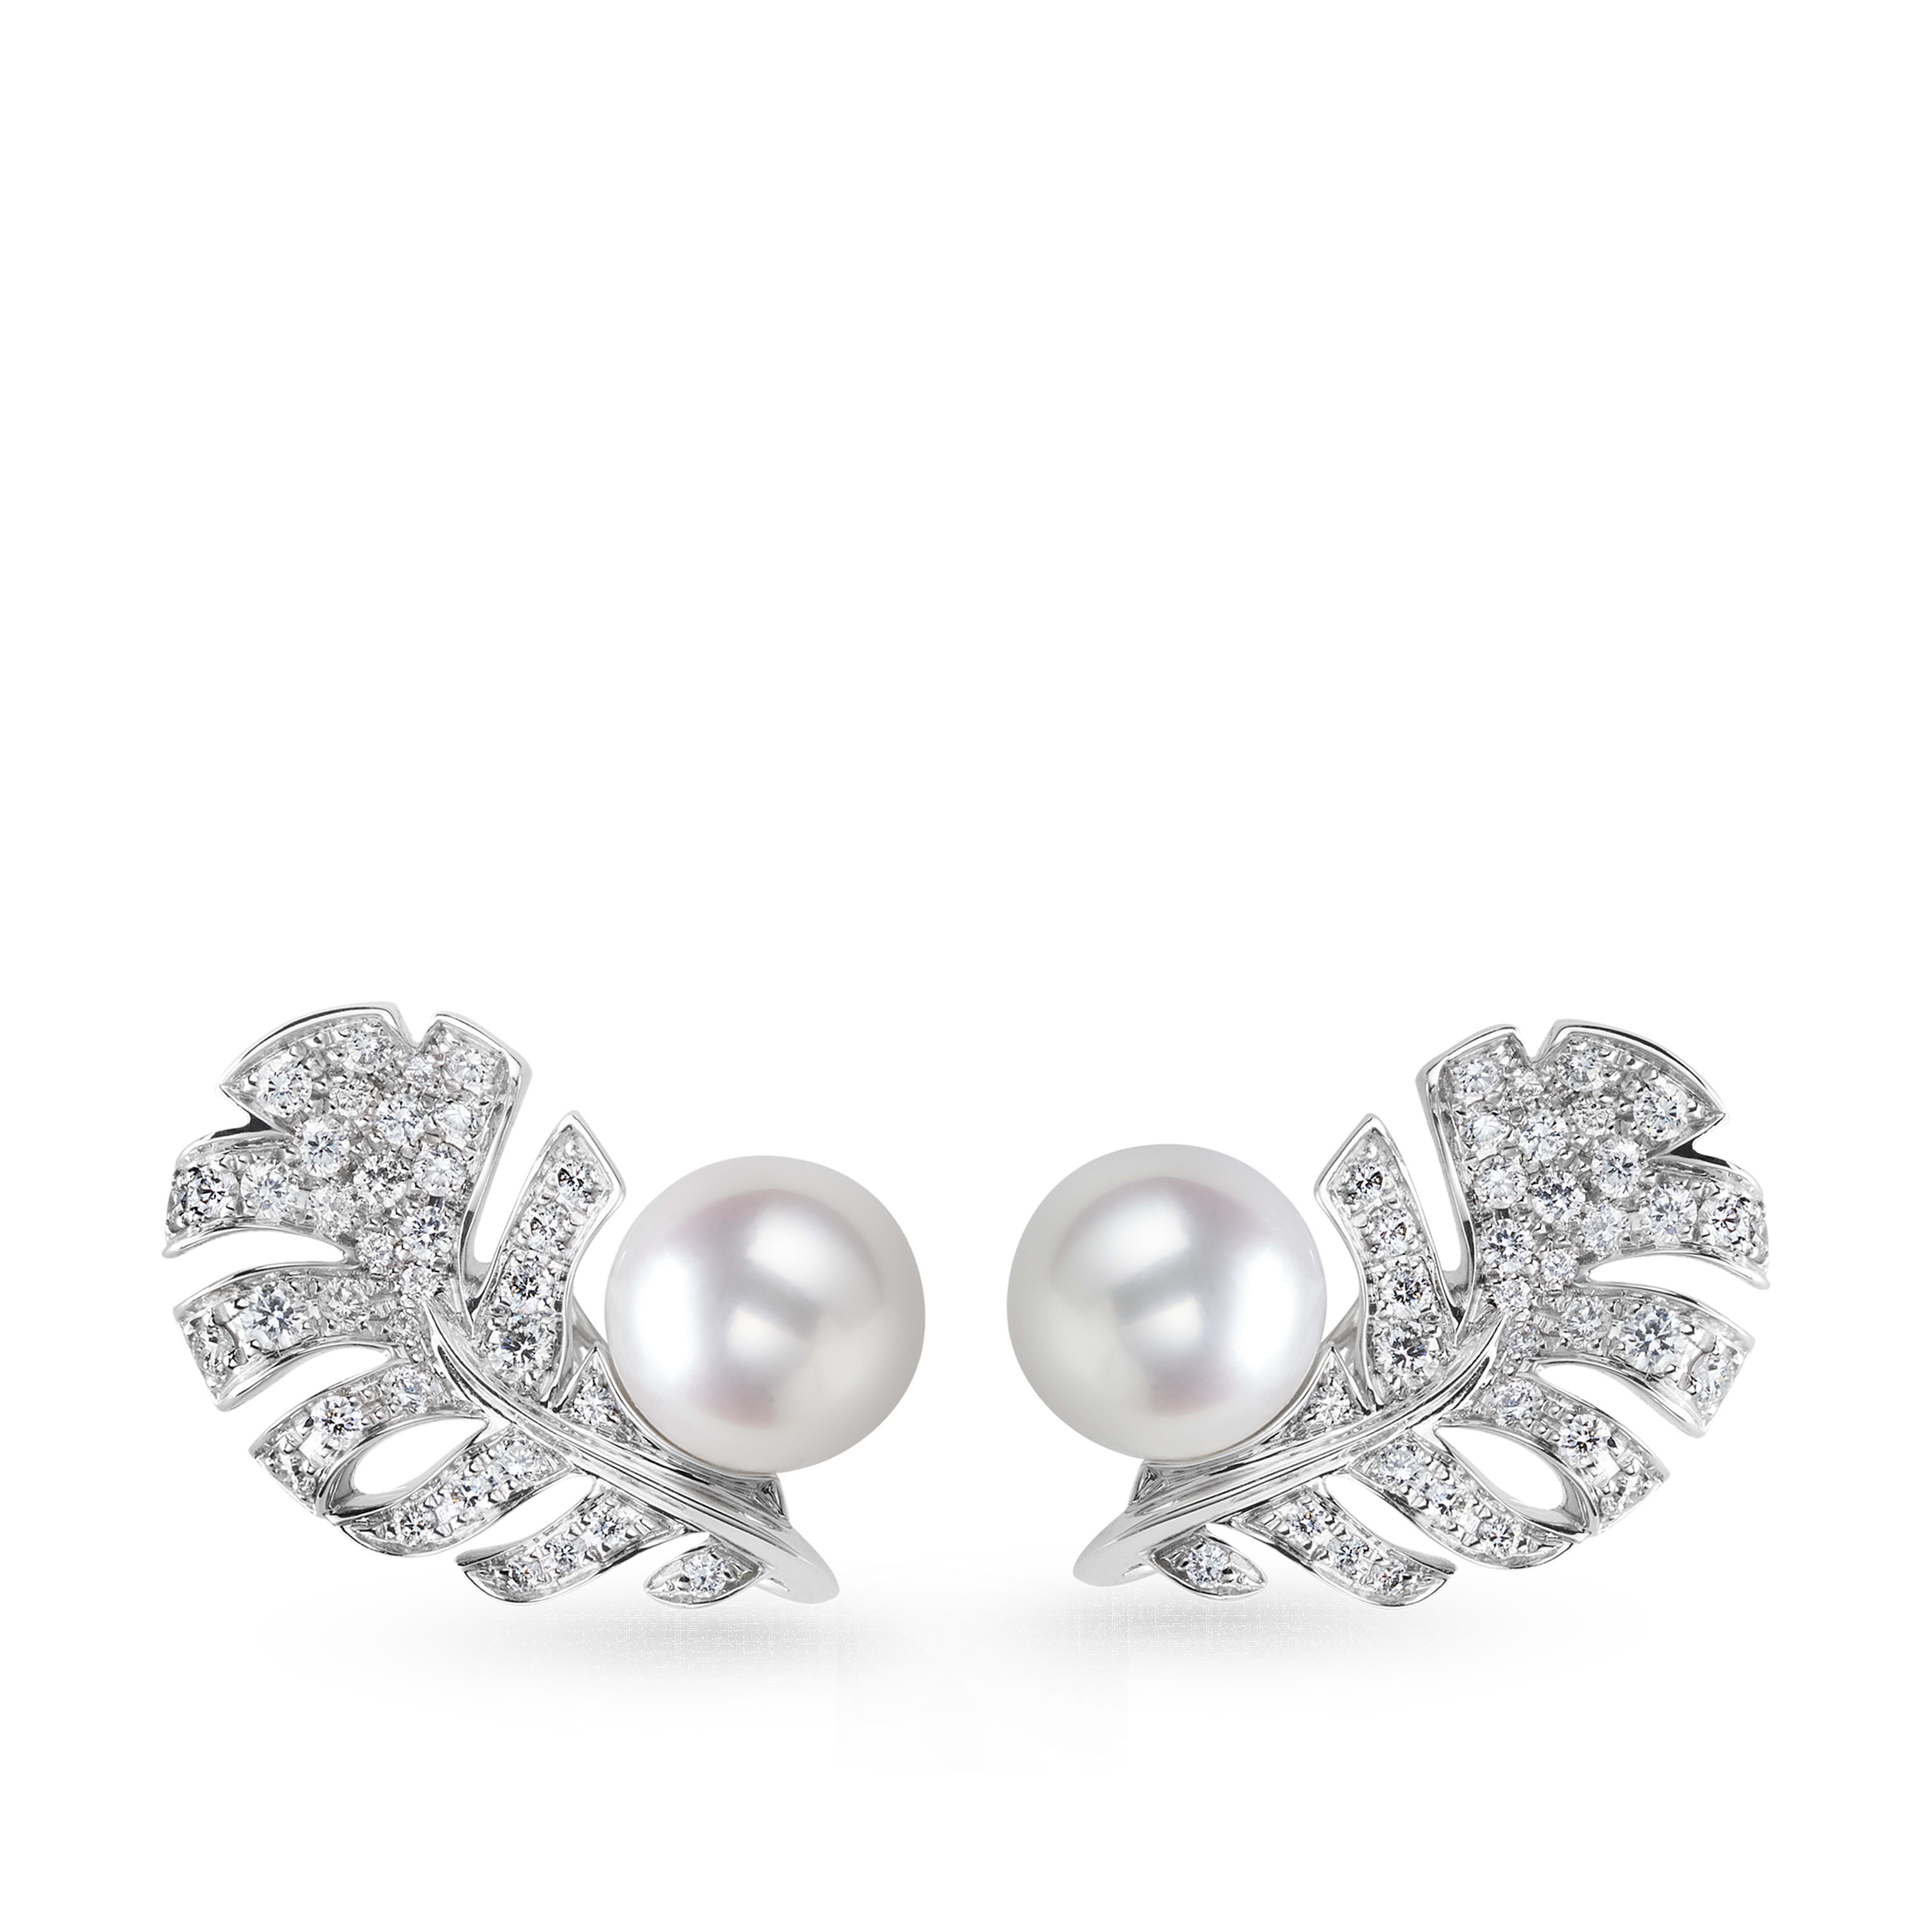 Plume de CHANEL earrings - 18K white gold, diamonds, cultured pearls - CHANEL - Default view - see standard sized version